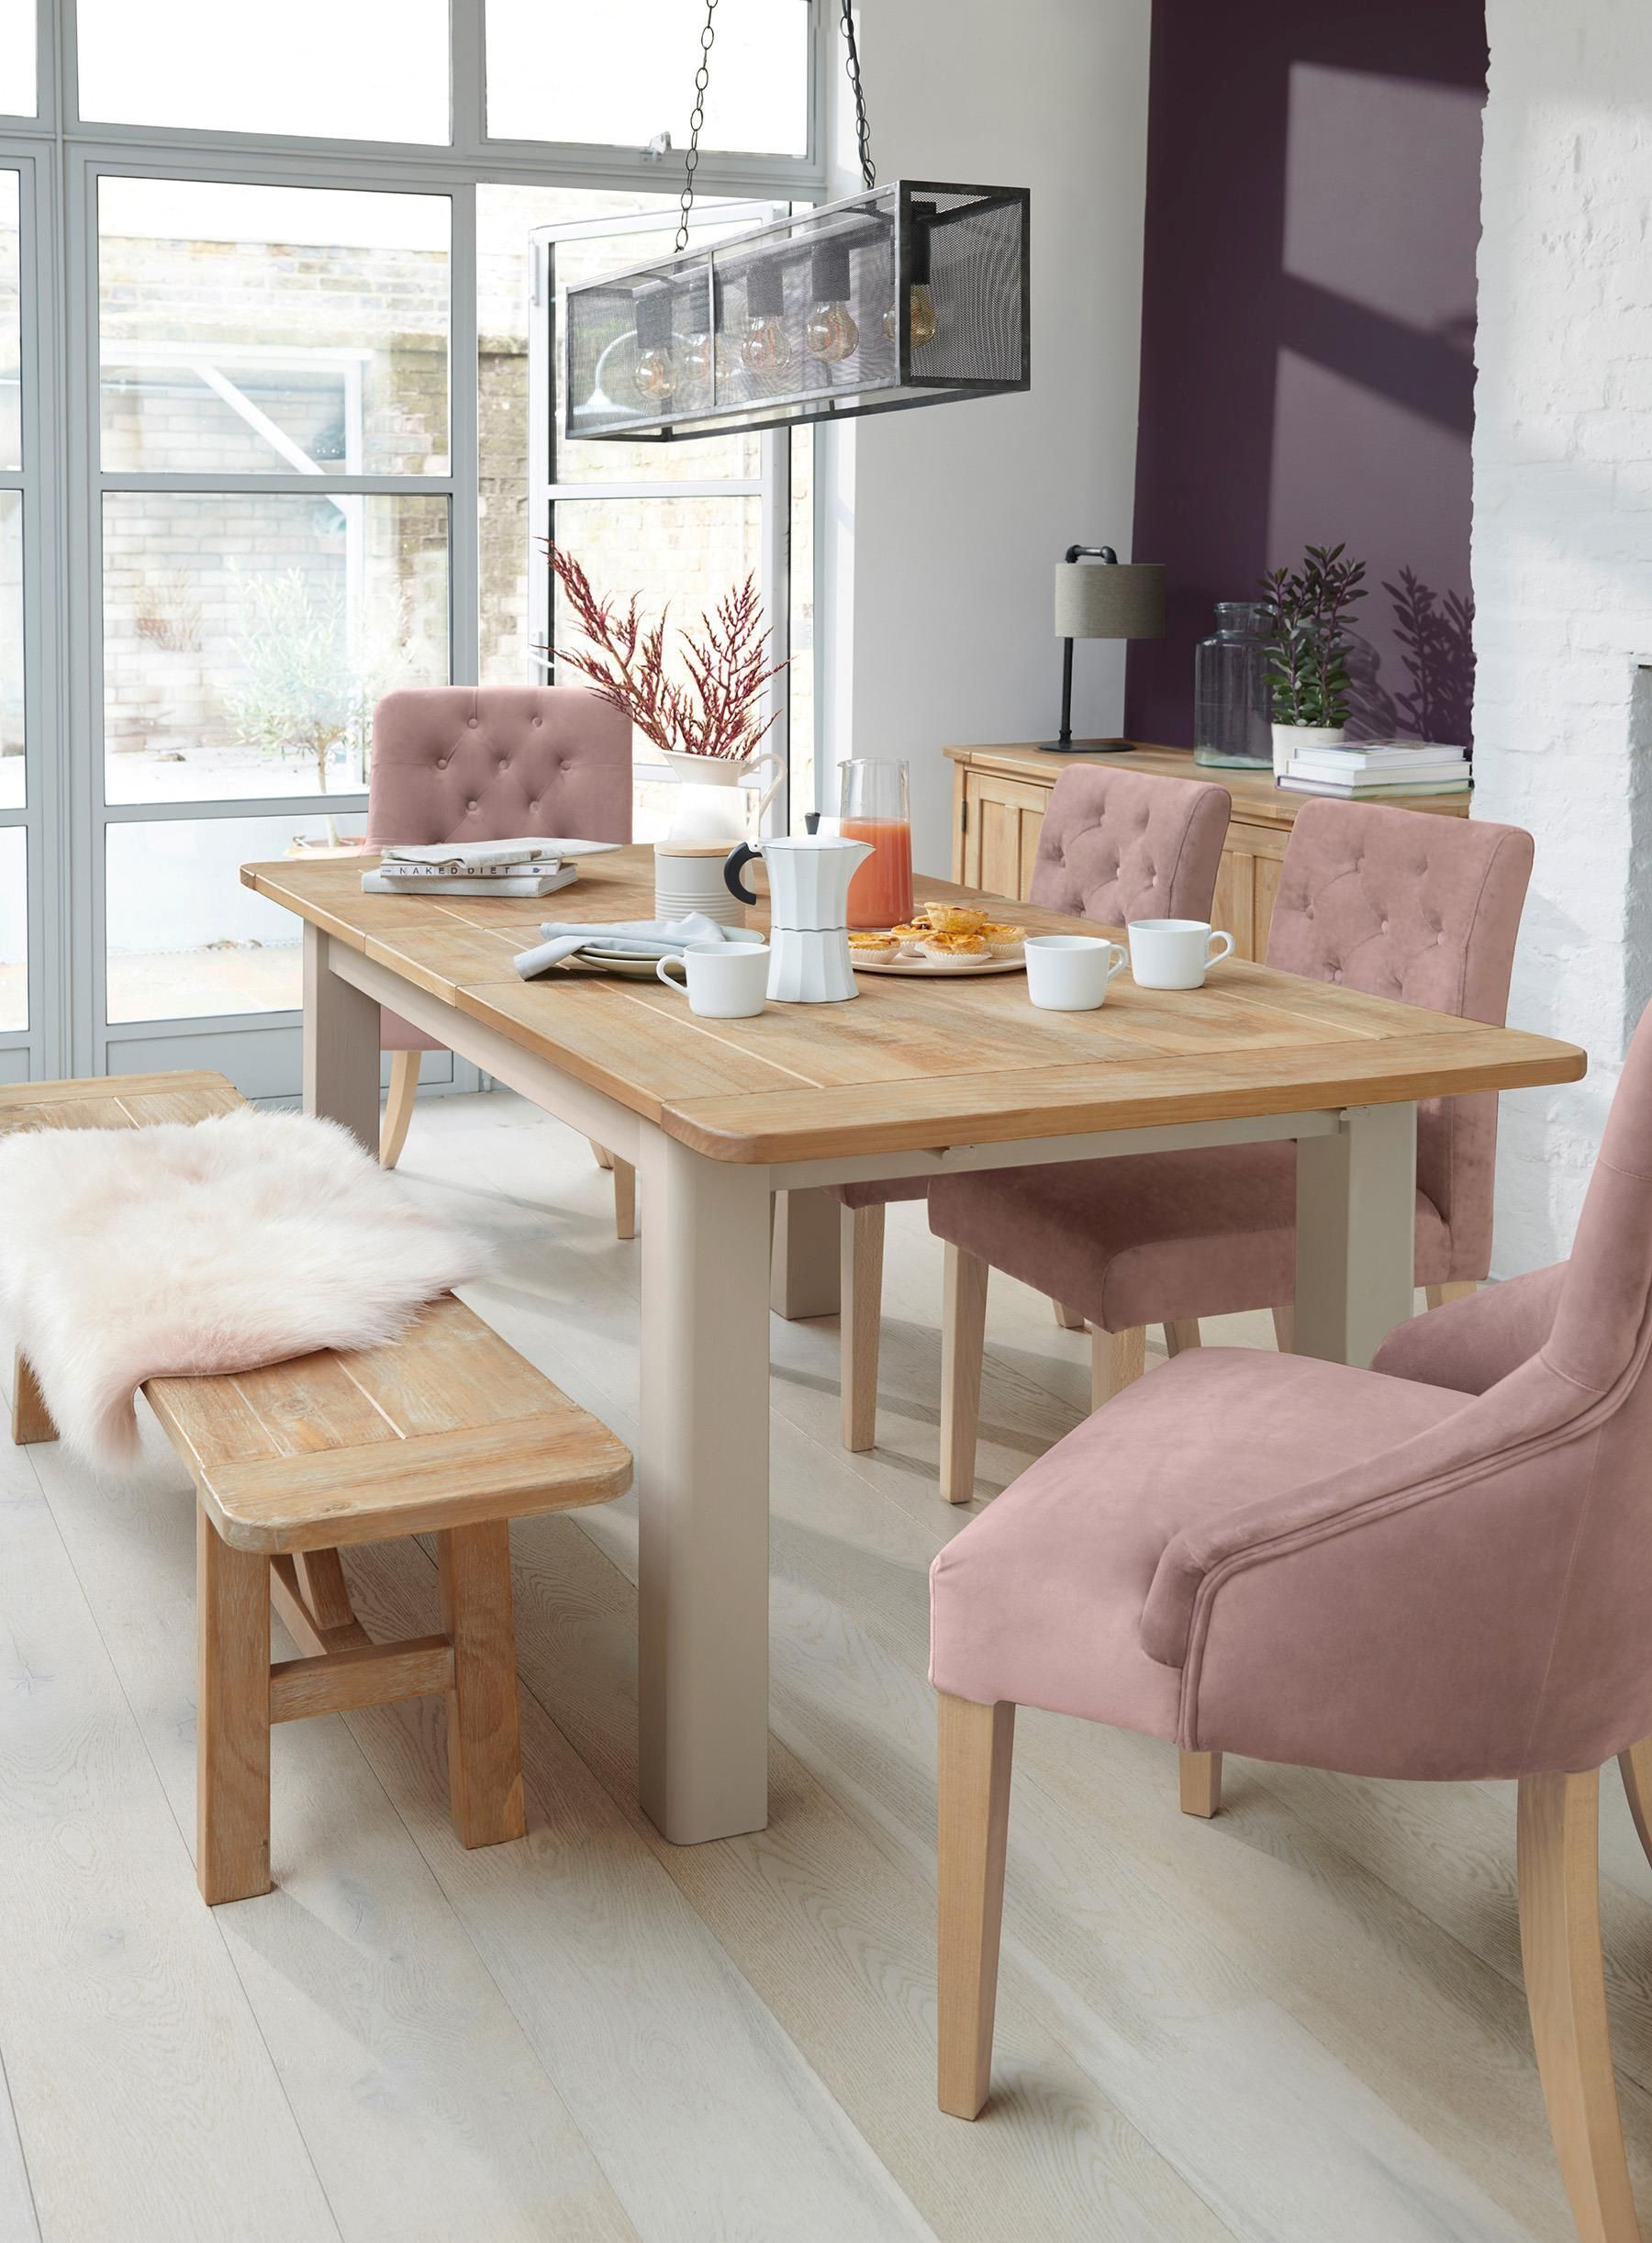 Buy Huxley Painted 6 To 8 Seater Extending Dining Table From With Regard To 2017 Gray Wash Livingston Extending Dining Tables (View 5 of 25)